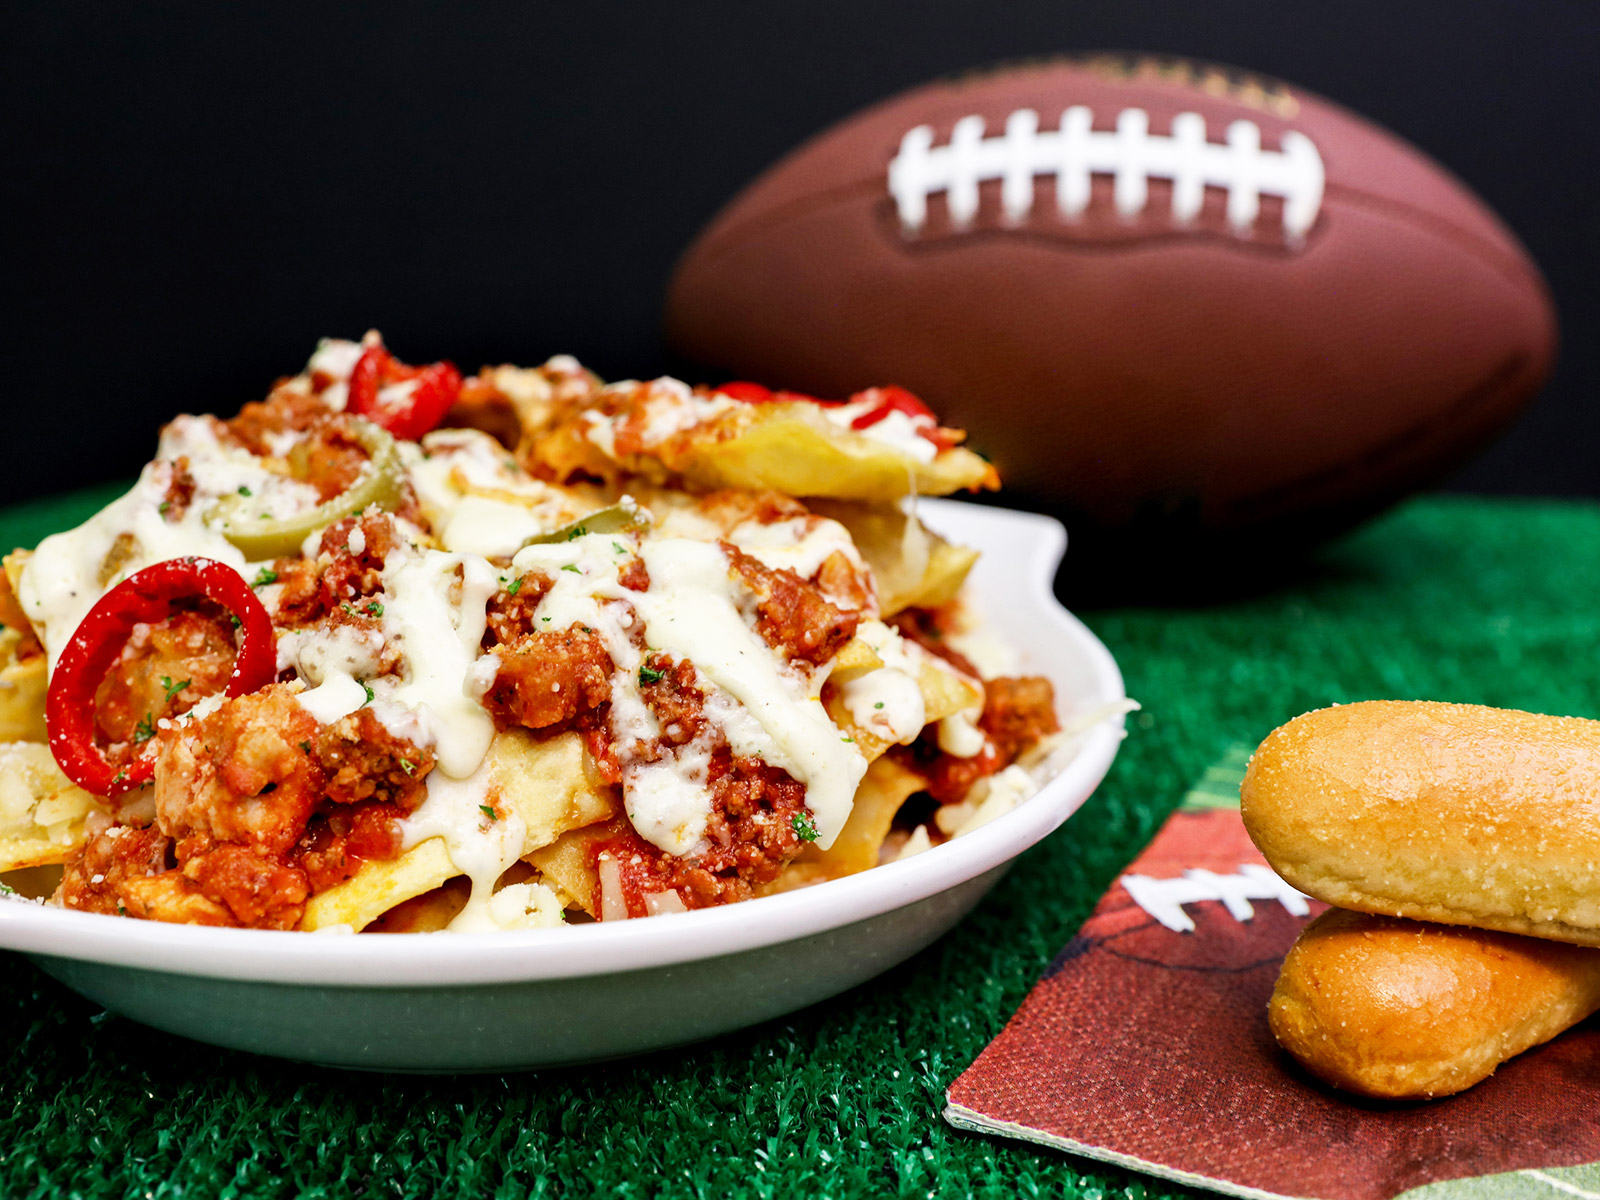 Olive Garden Puts Pasta Nachos on the Menu in Time for the Super Bowl